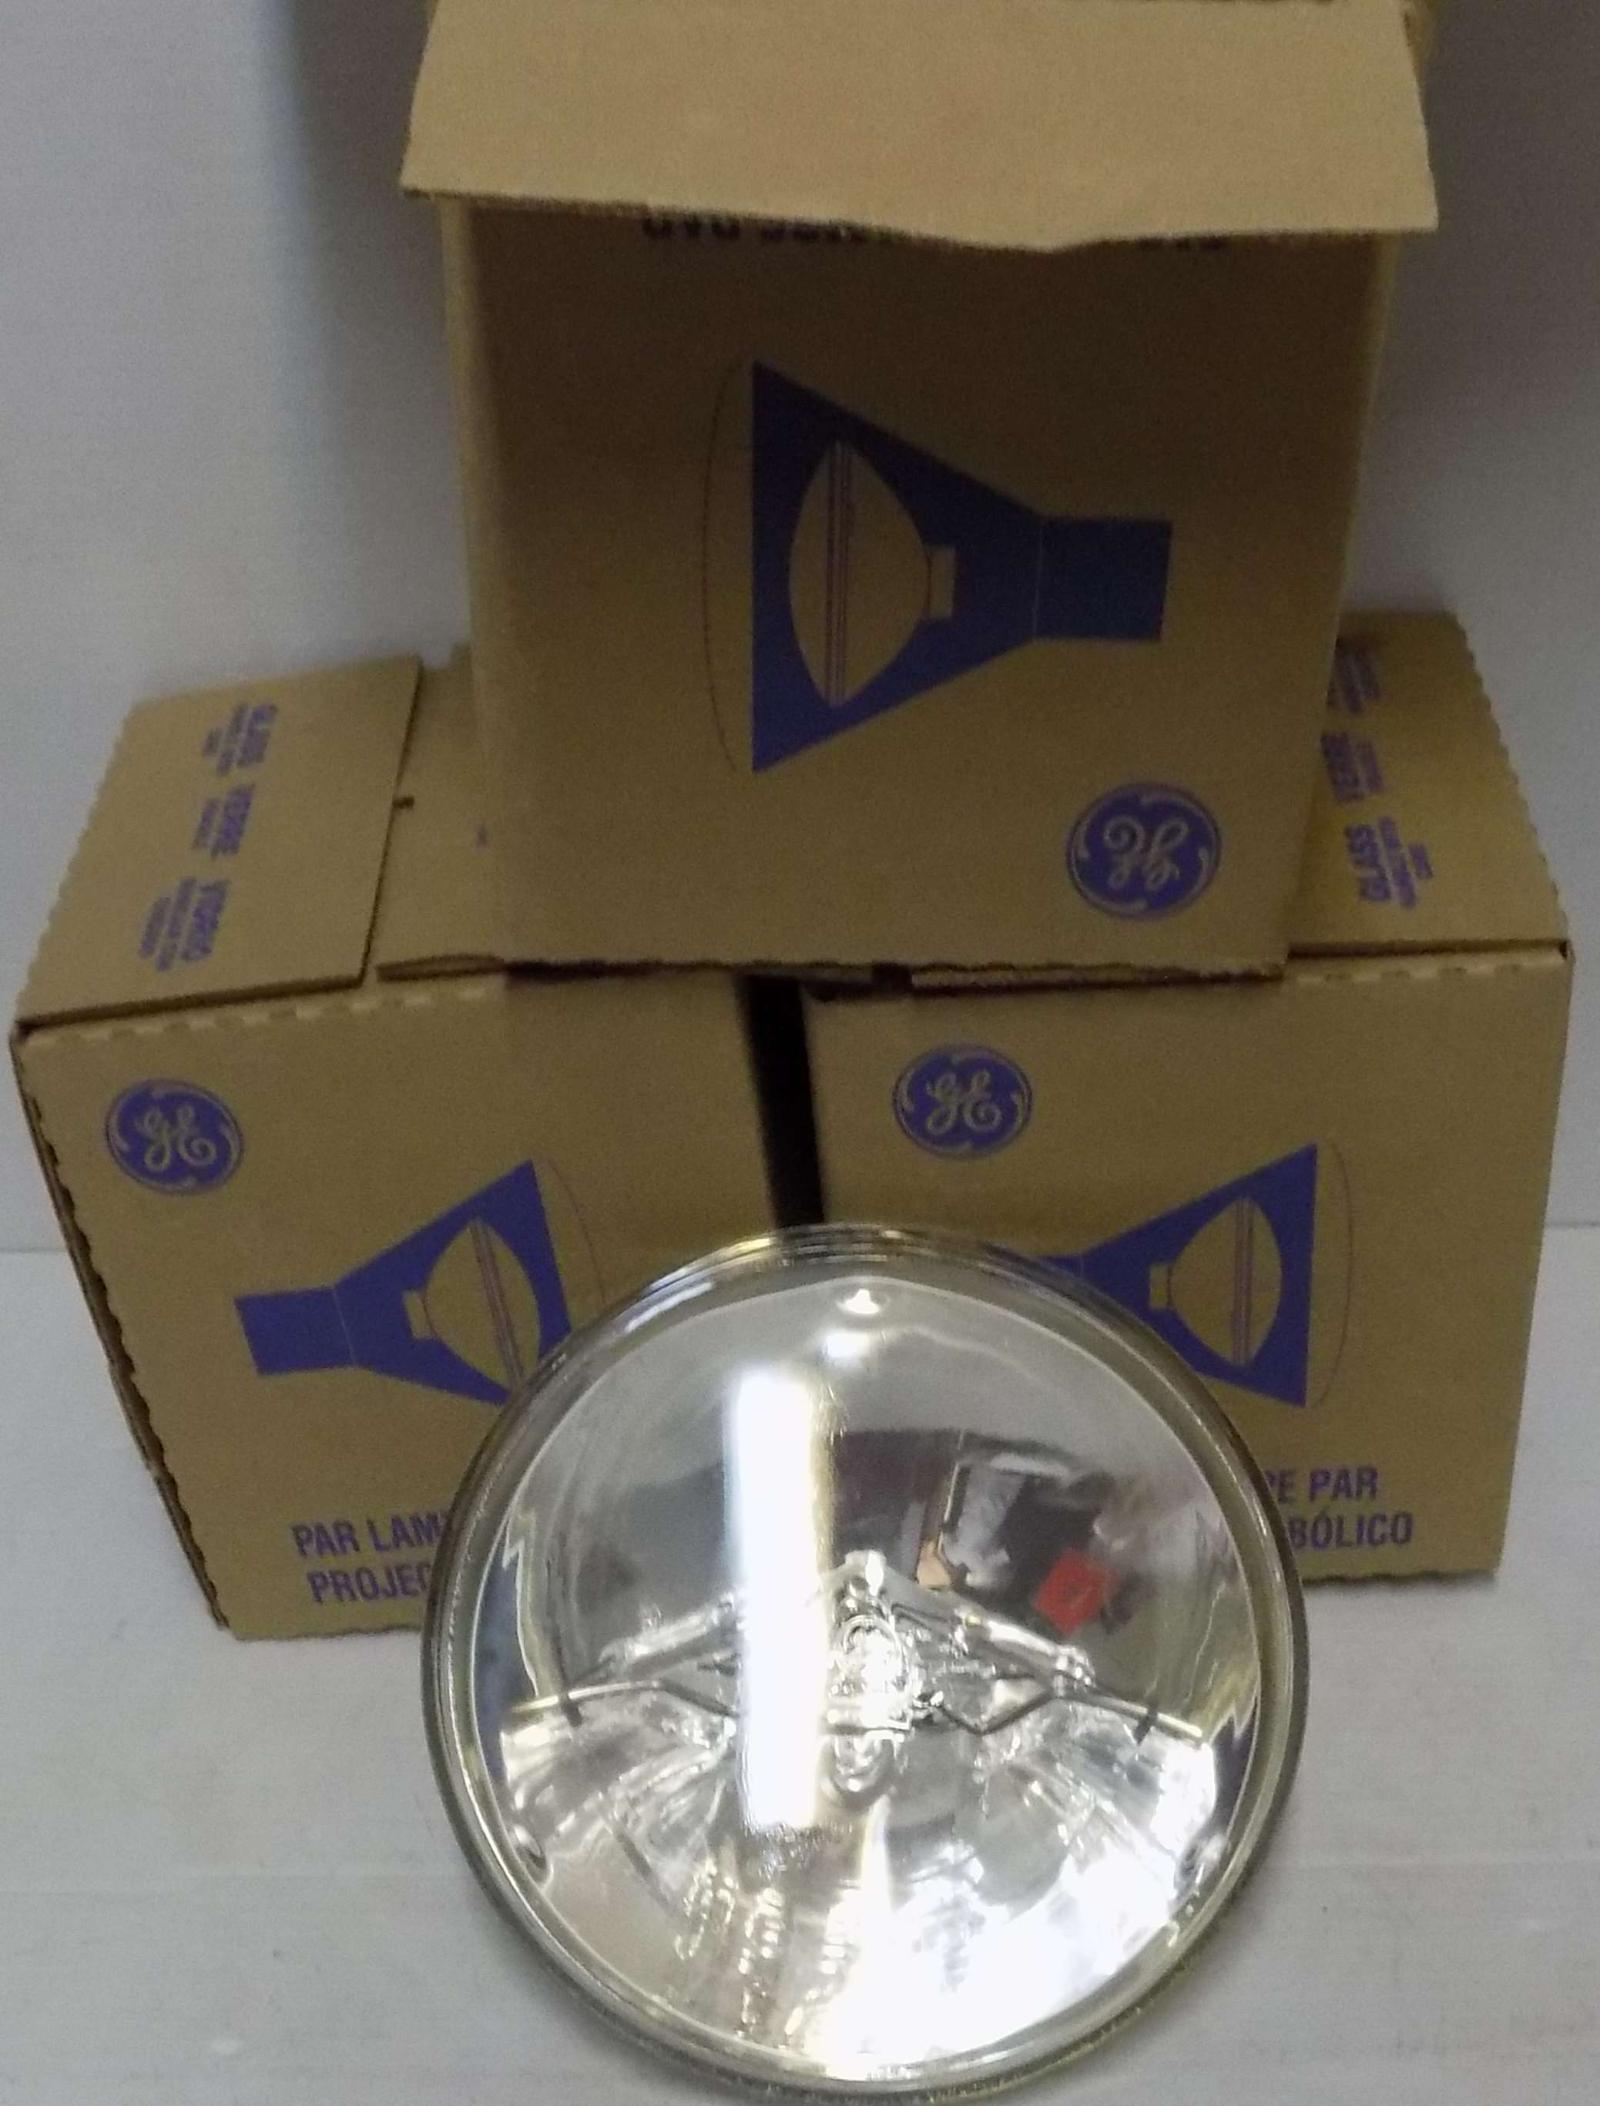 General Electric Par Lamps geq4559x-28v-600 w  (96 units)